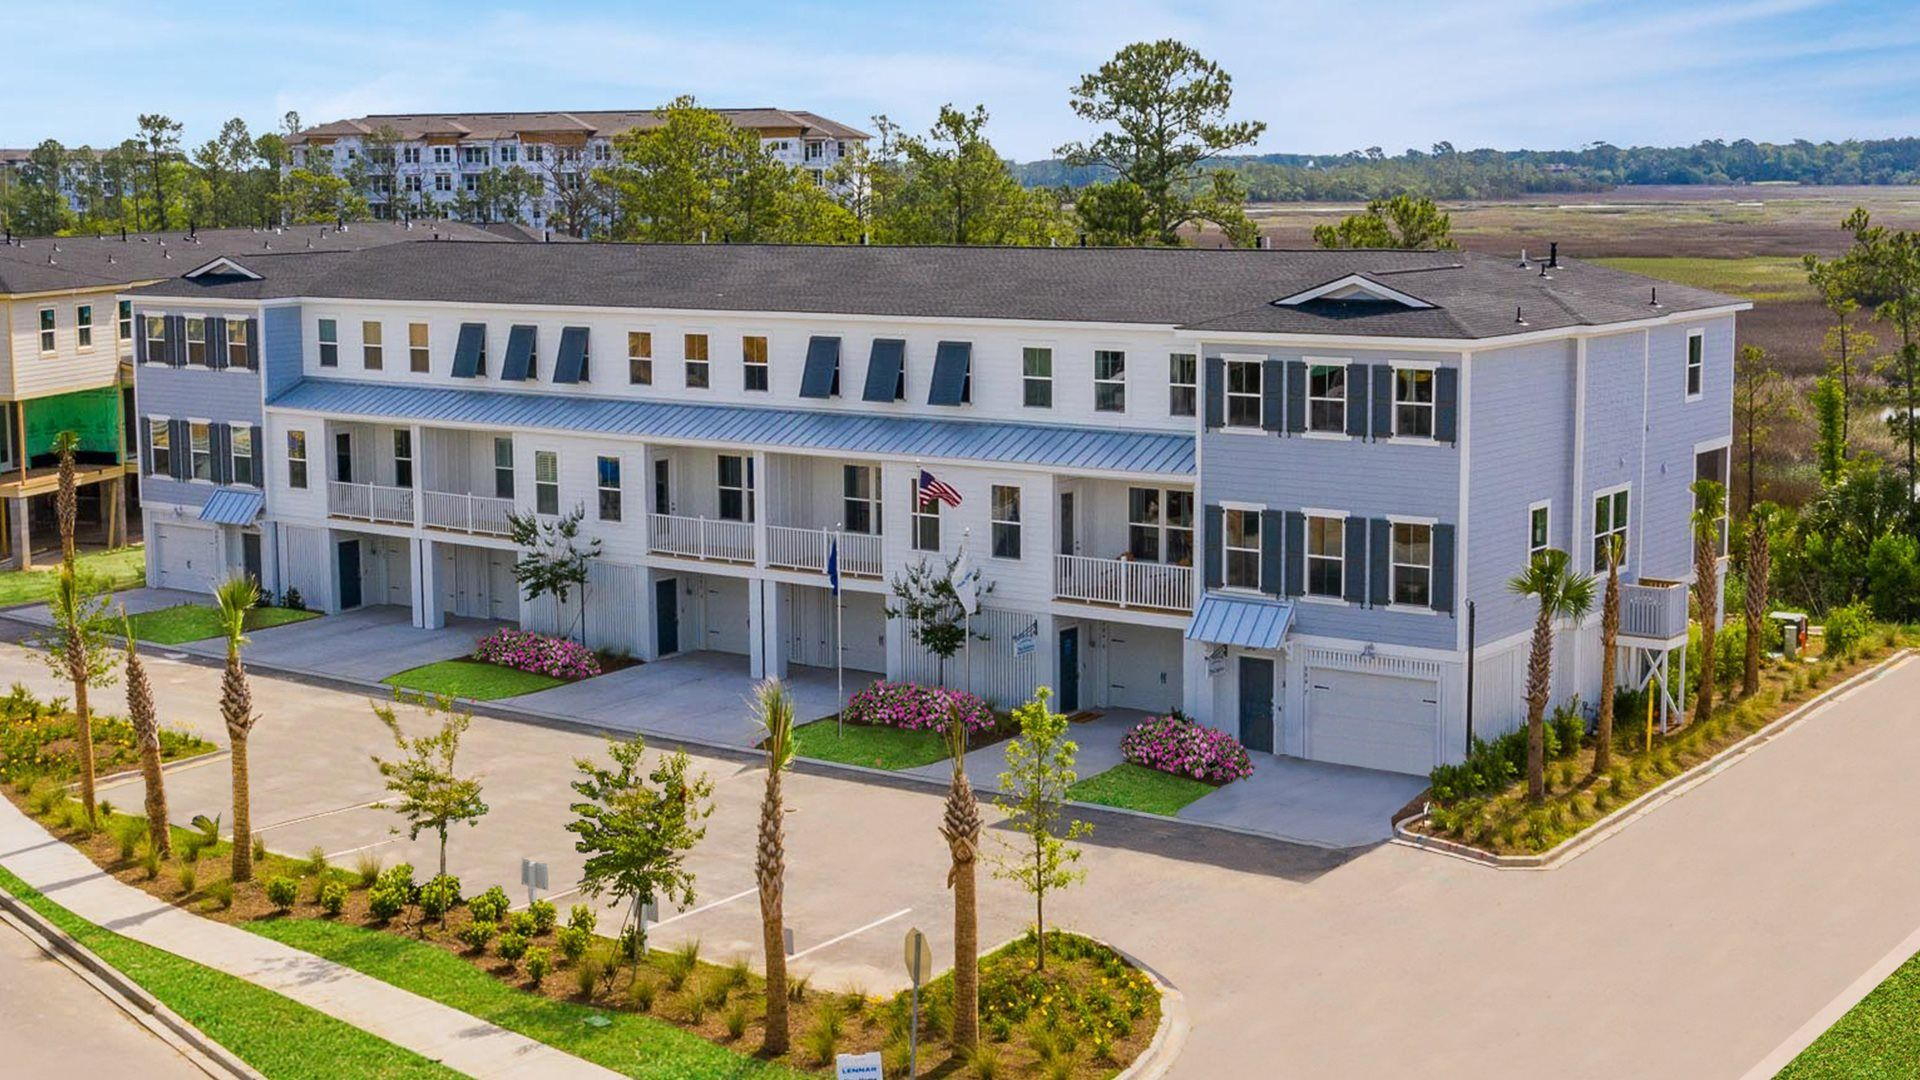 Governor's Cay Townhomes